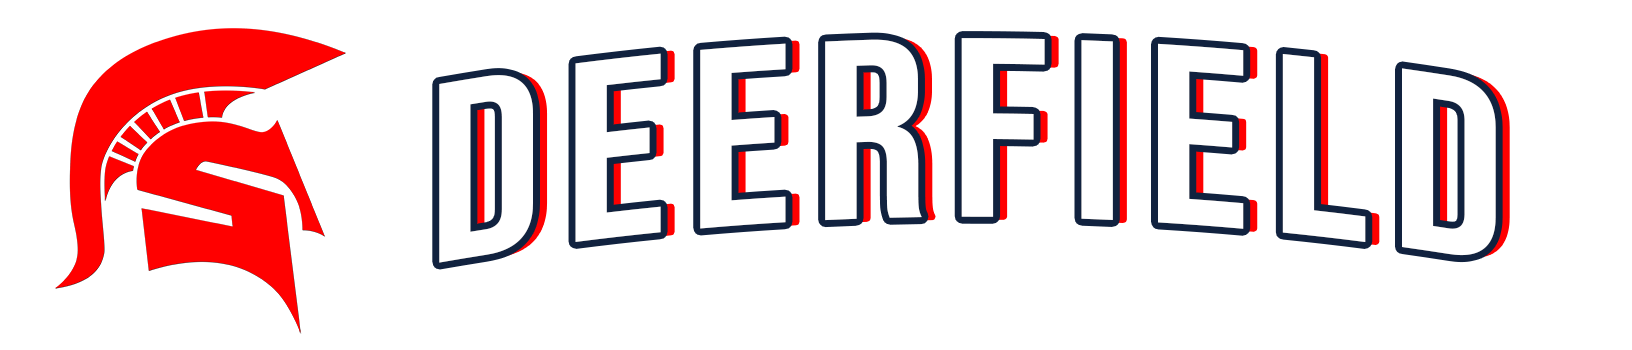 Deerfield USD 216Logo